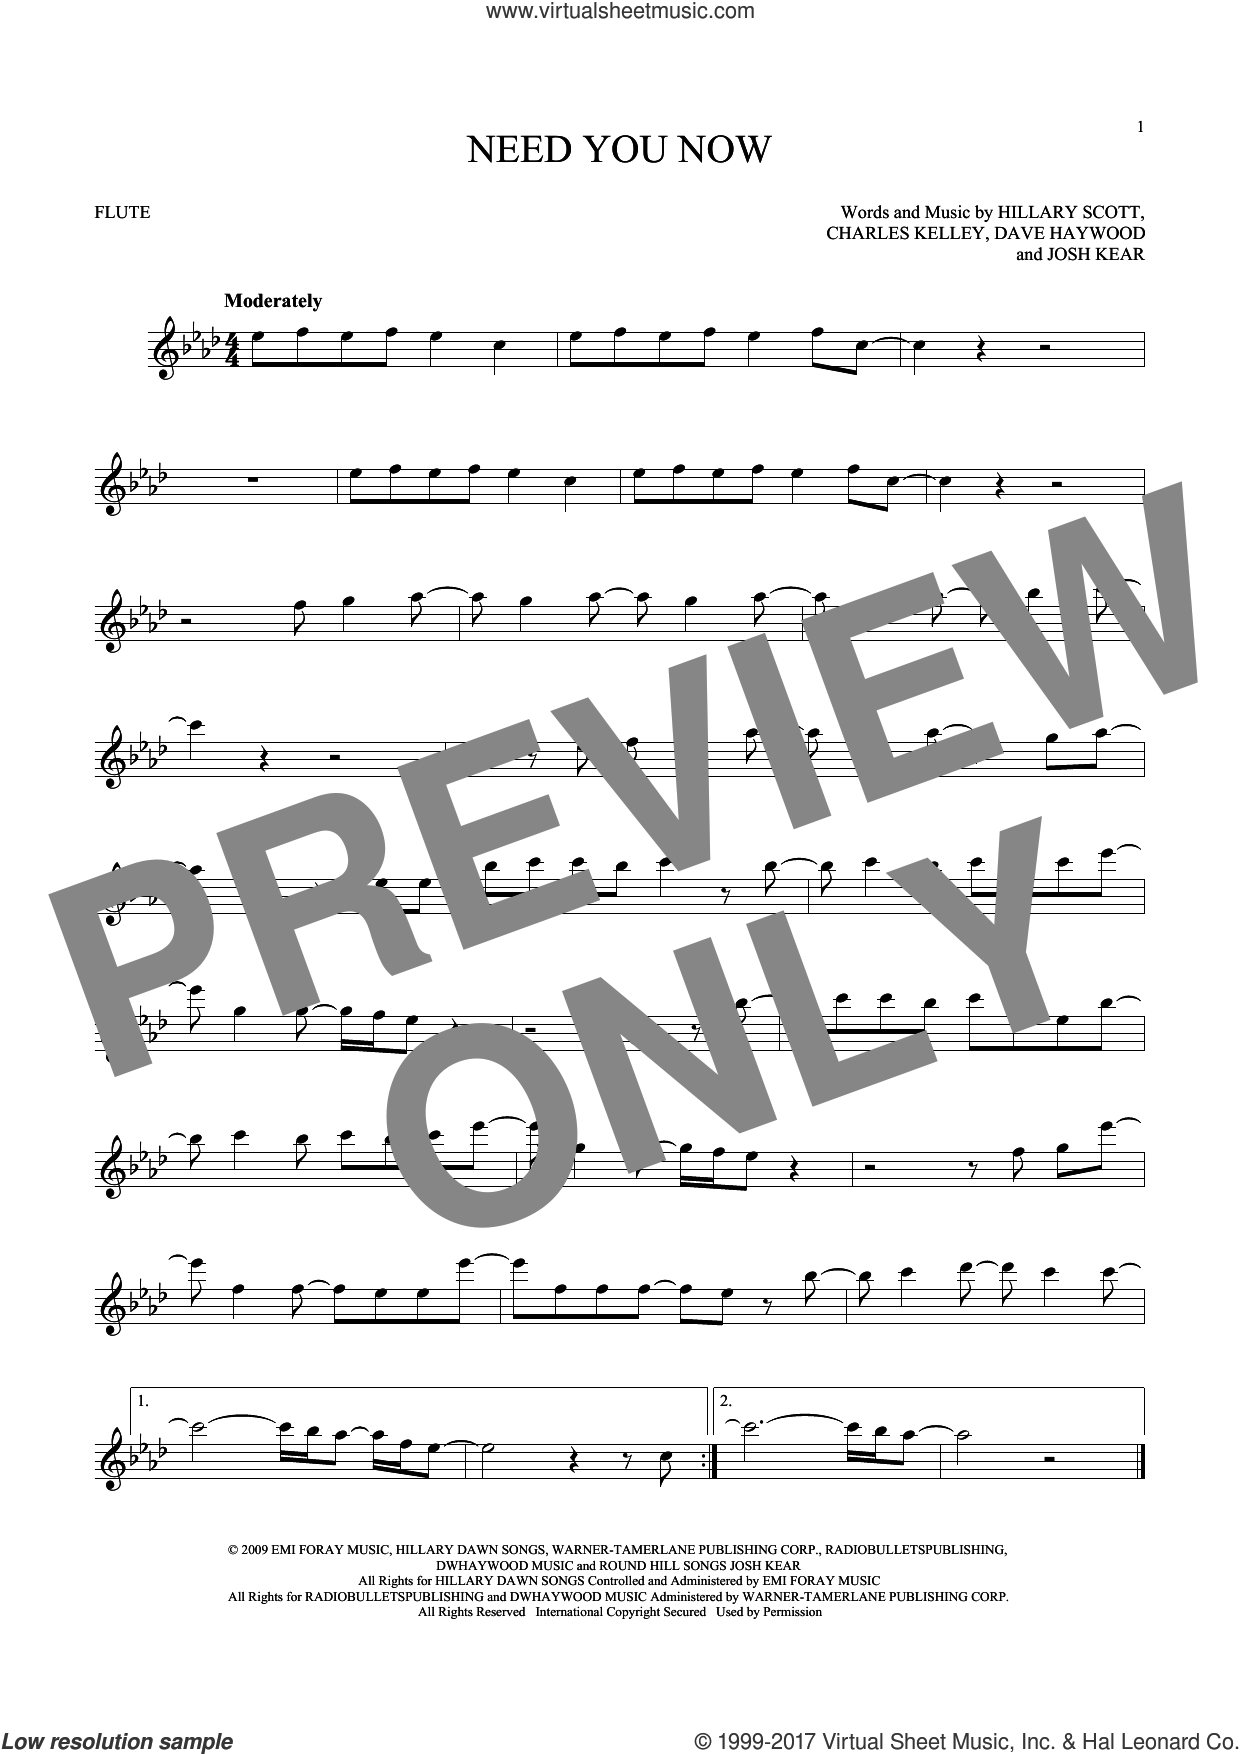 Need You Now sheet music for flute solo by Lady A, Lady Antebellum, Charles Kelley, Dave Haywood, Hillary Scott and Josh Kear, intermediate skill level